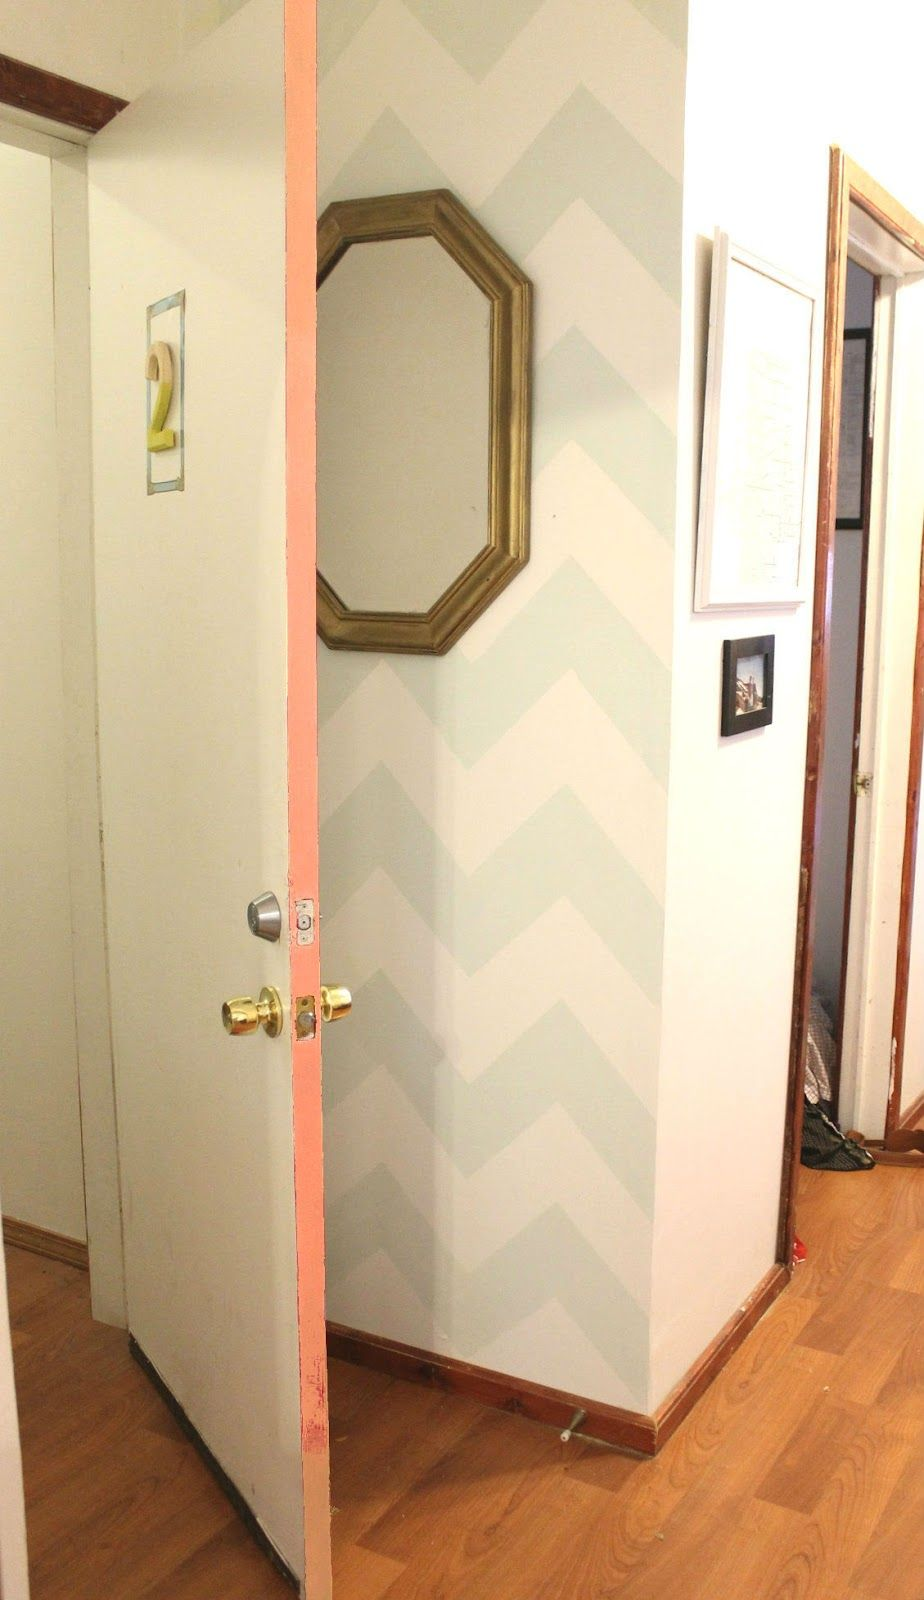 Consider Painting The Door Frame For A Quick Non Obtrusive Pop Of Color Home Decor Hacks Home Diy Home